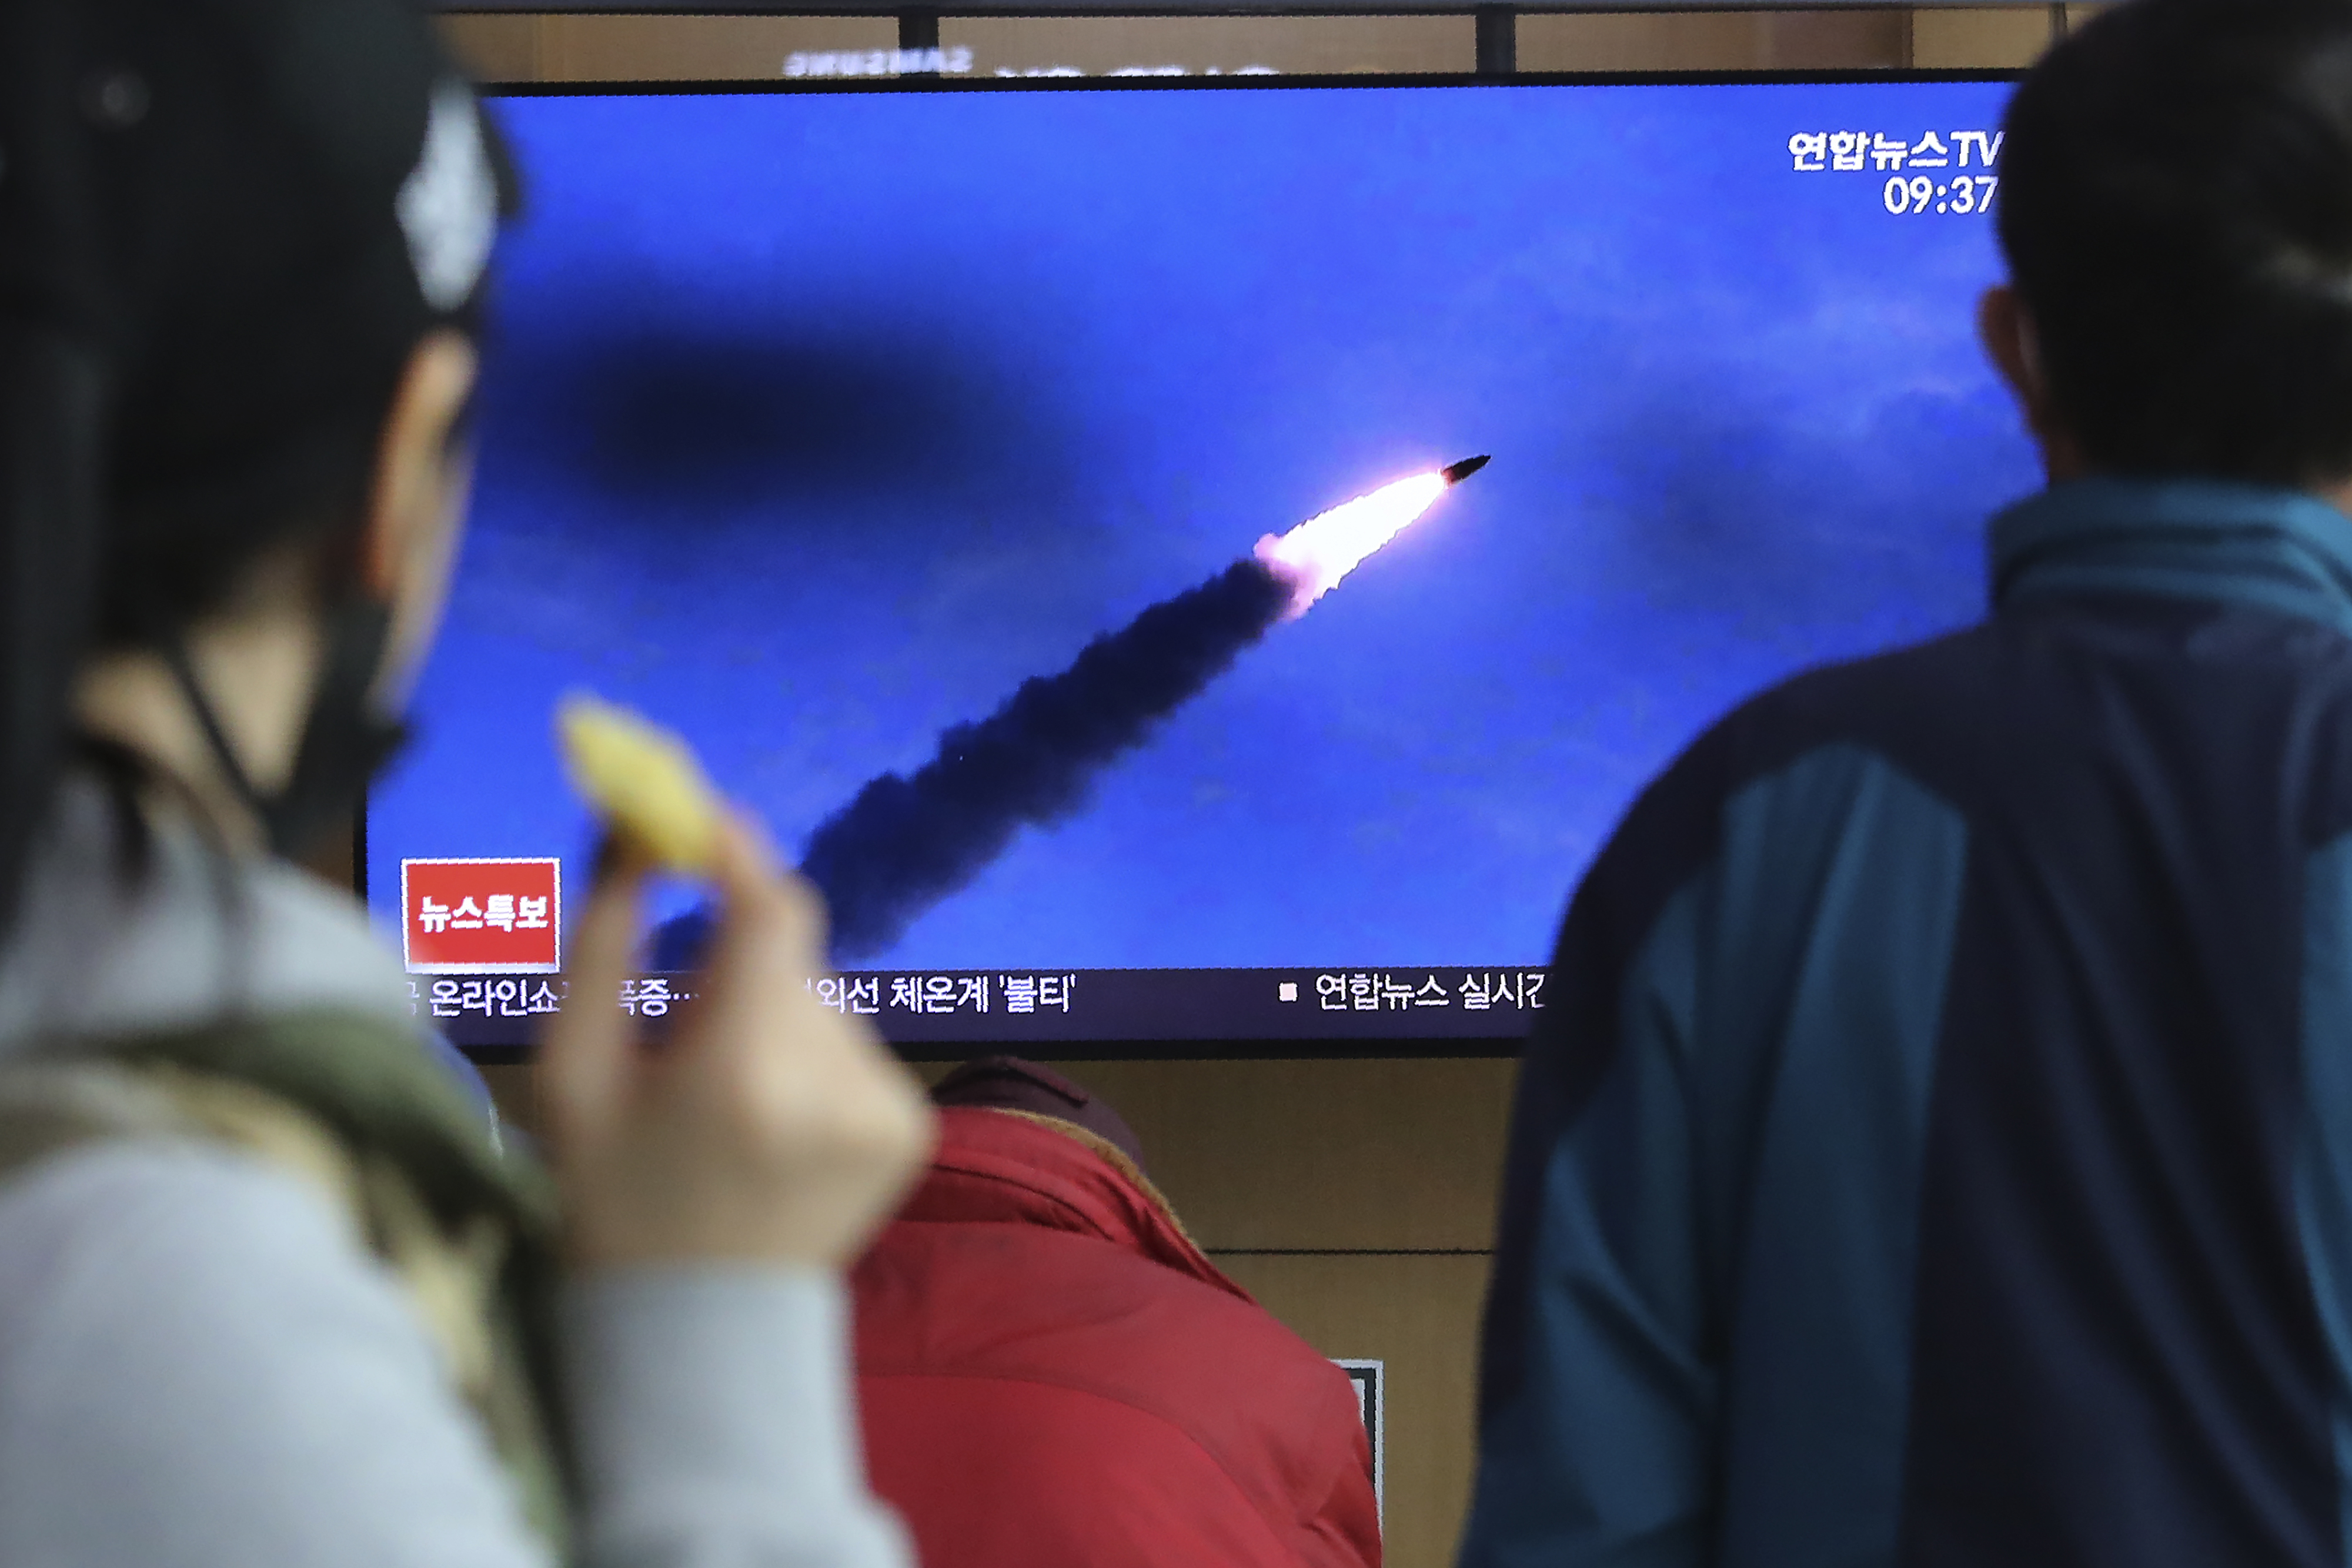 People watches a televsion screen showing a file image of North Korea's missile launch during a news program at the Seoul Railway Station in Seoul, South Korea on March 21, 2020.